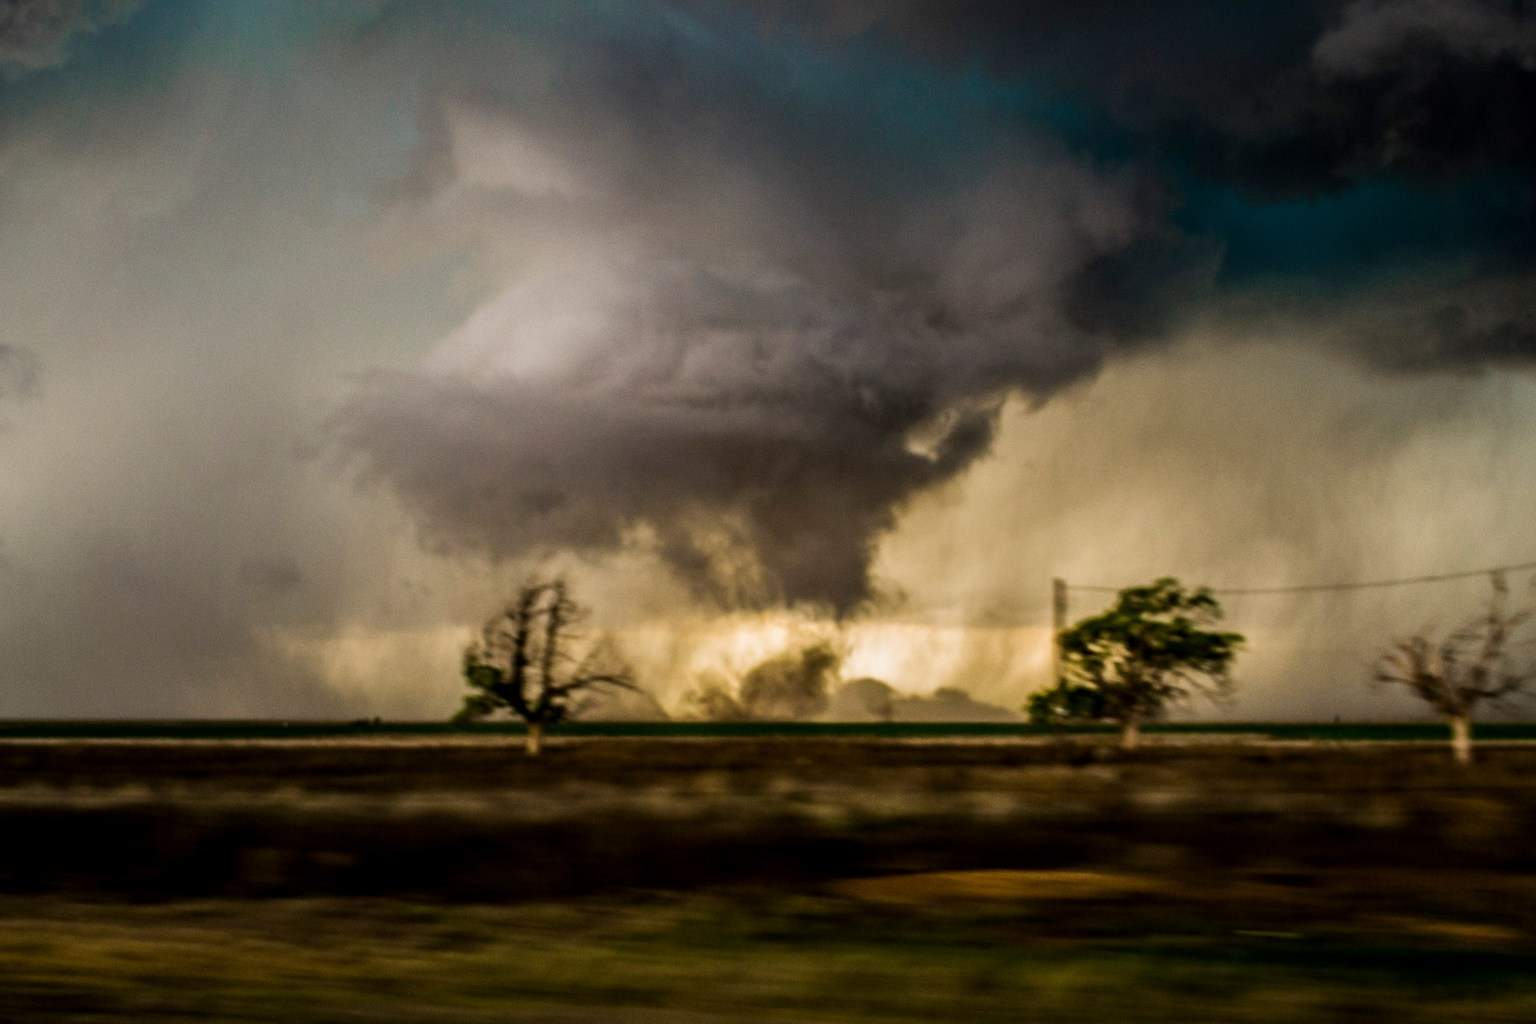 My second Tornado of the year in the Texas panhandle.